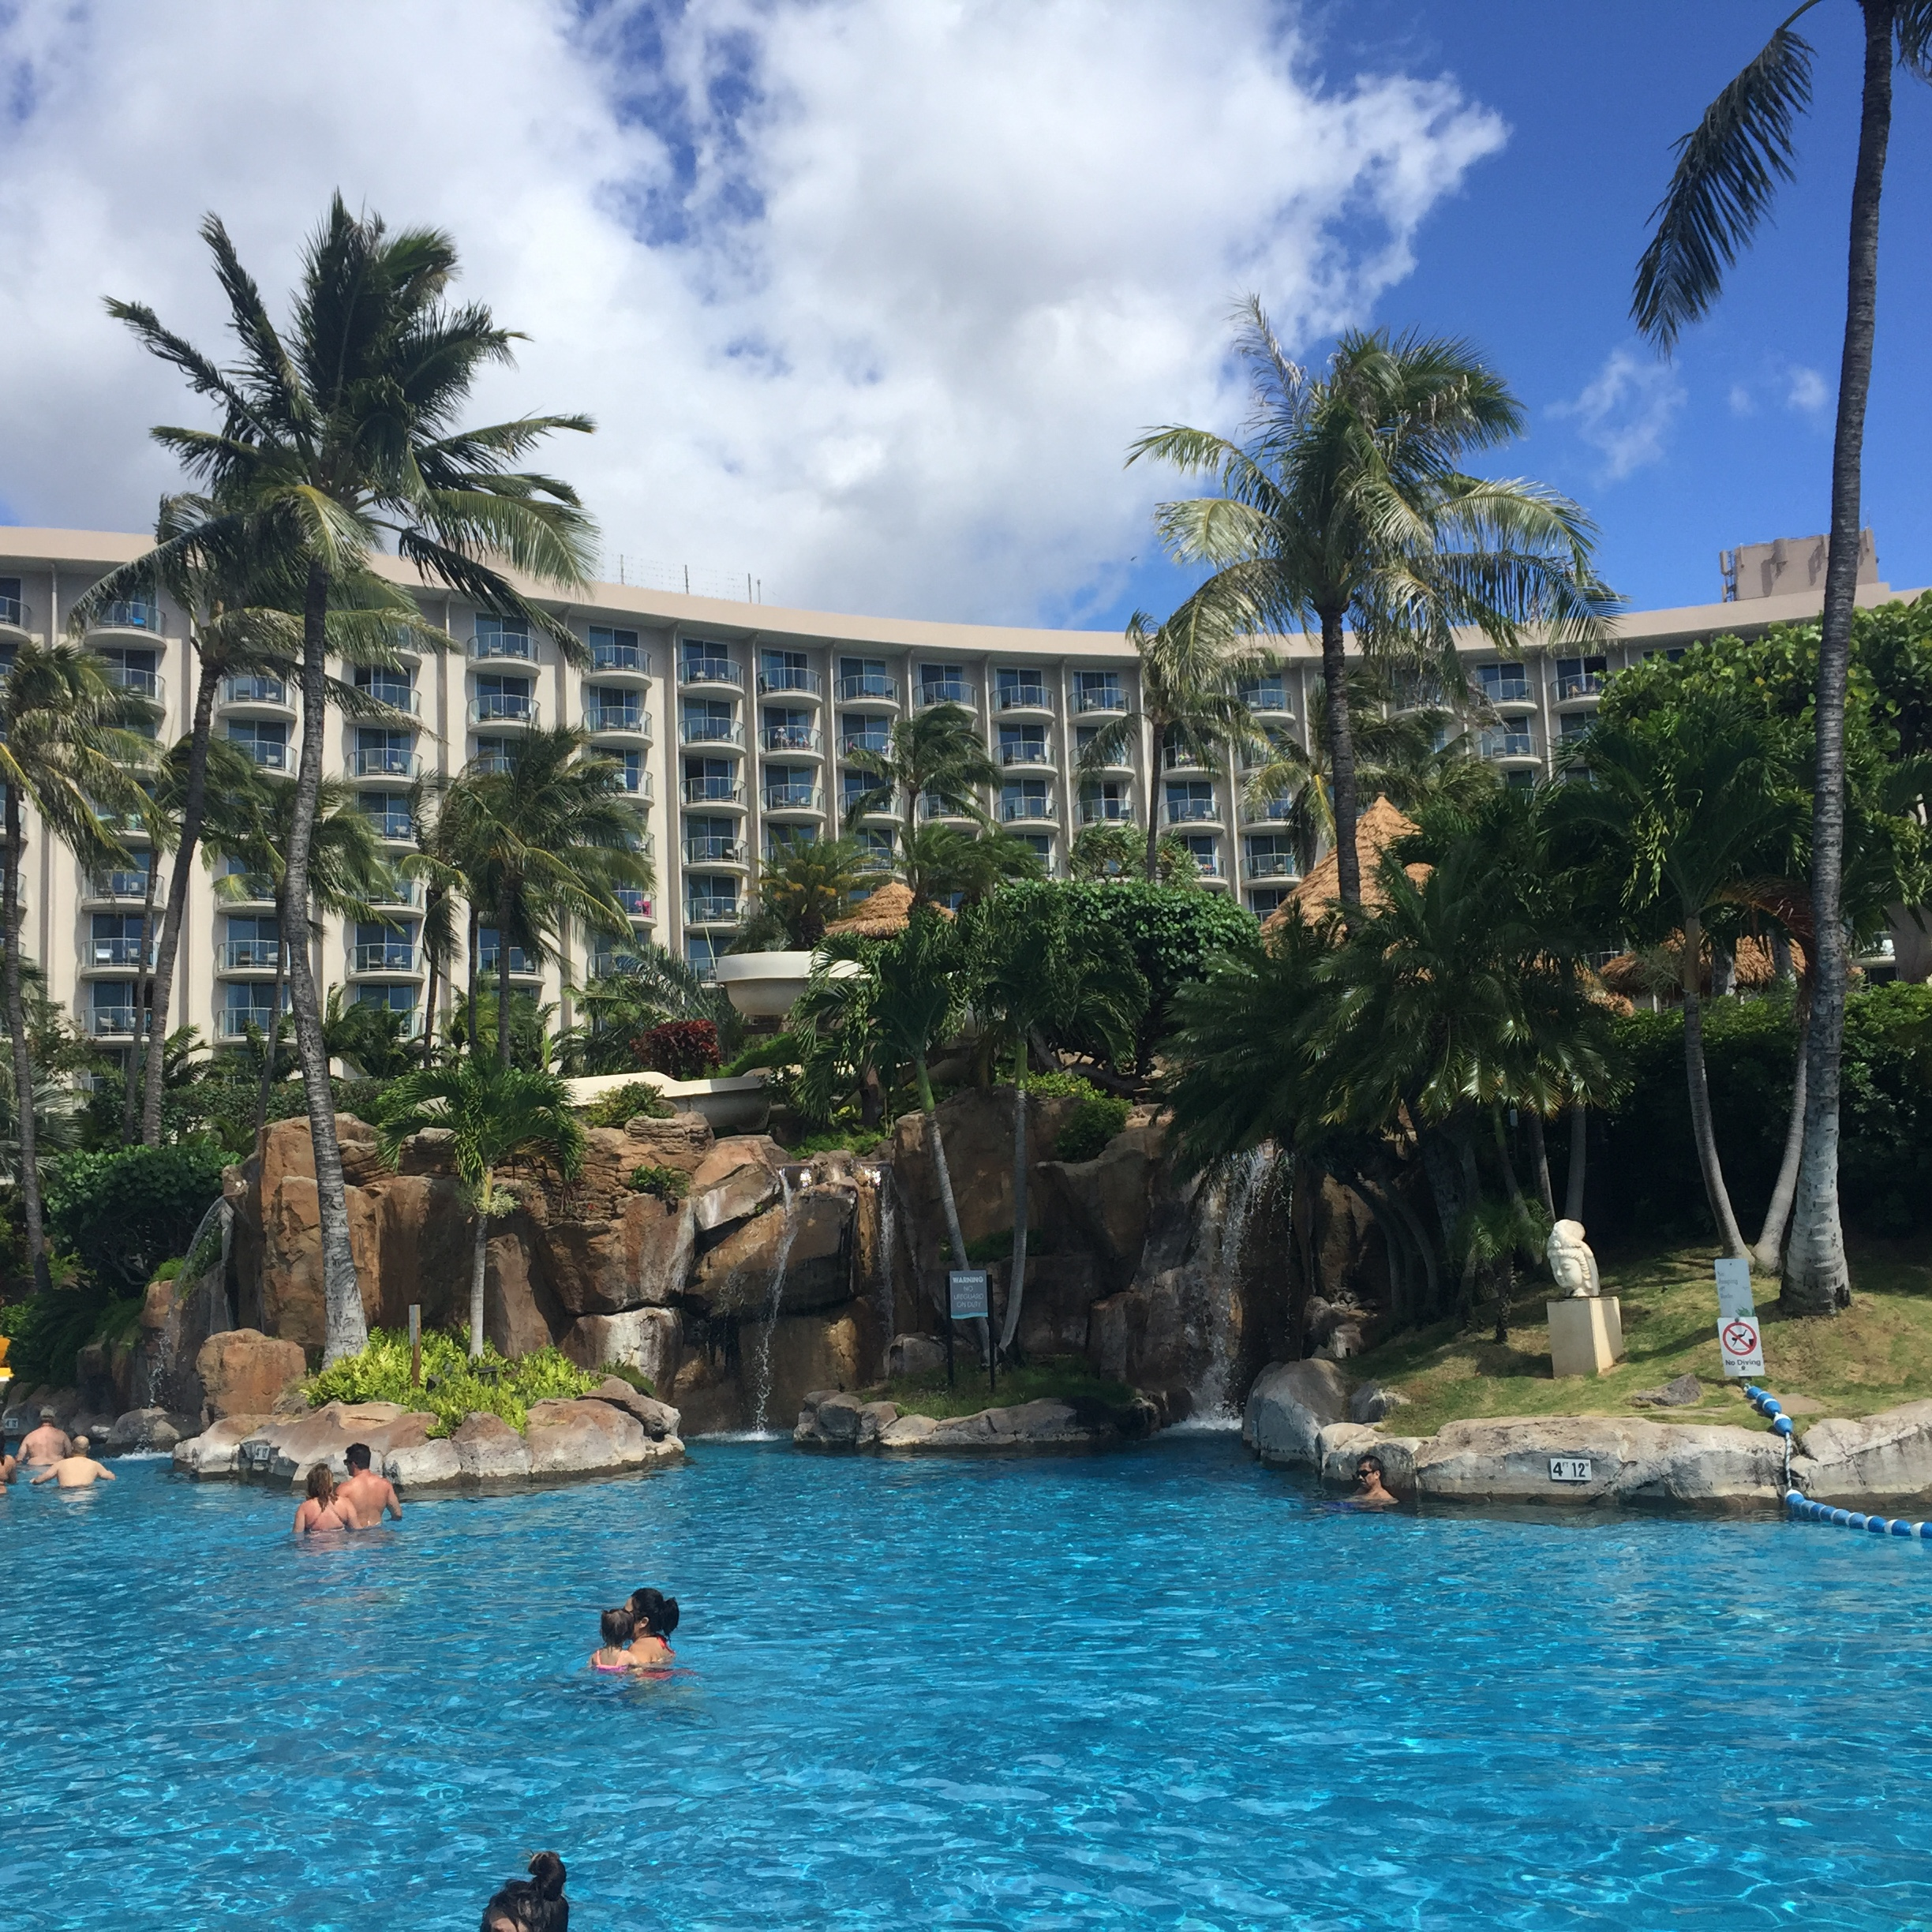 Only one of the pools at the Westin, Maui